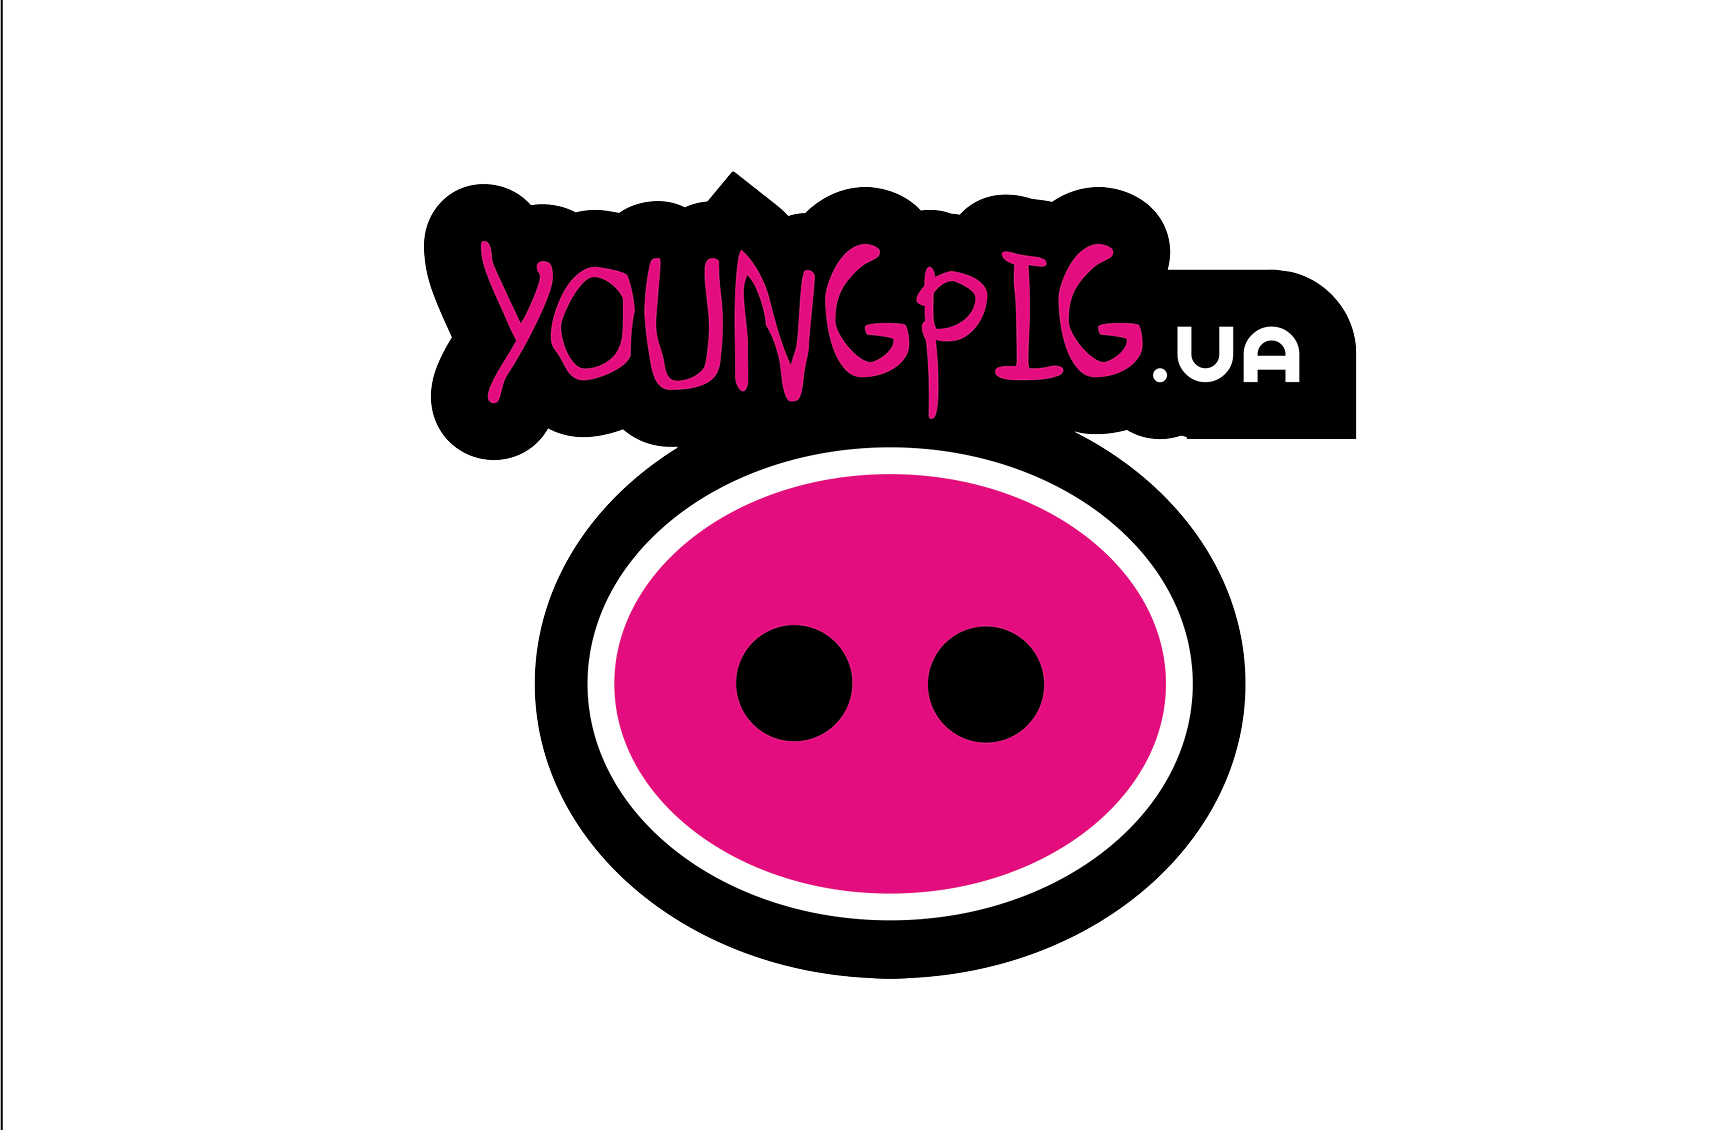 YoungPig